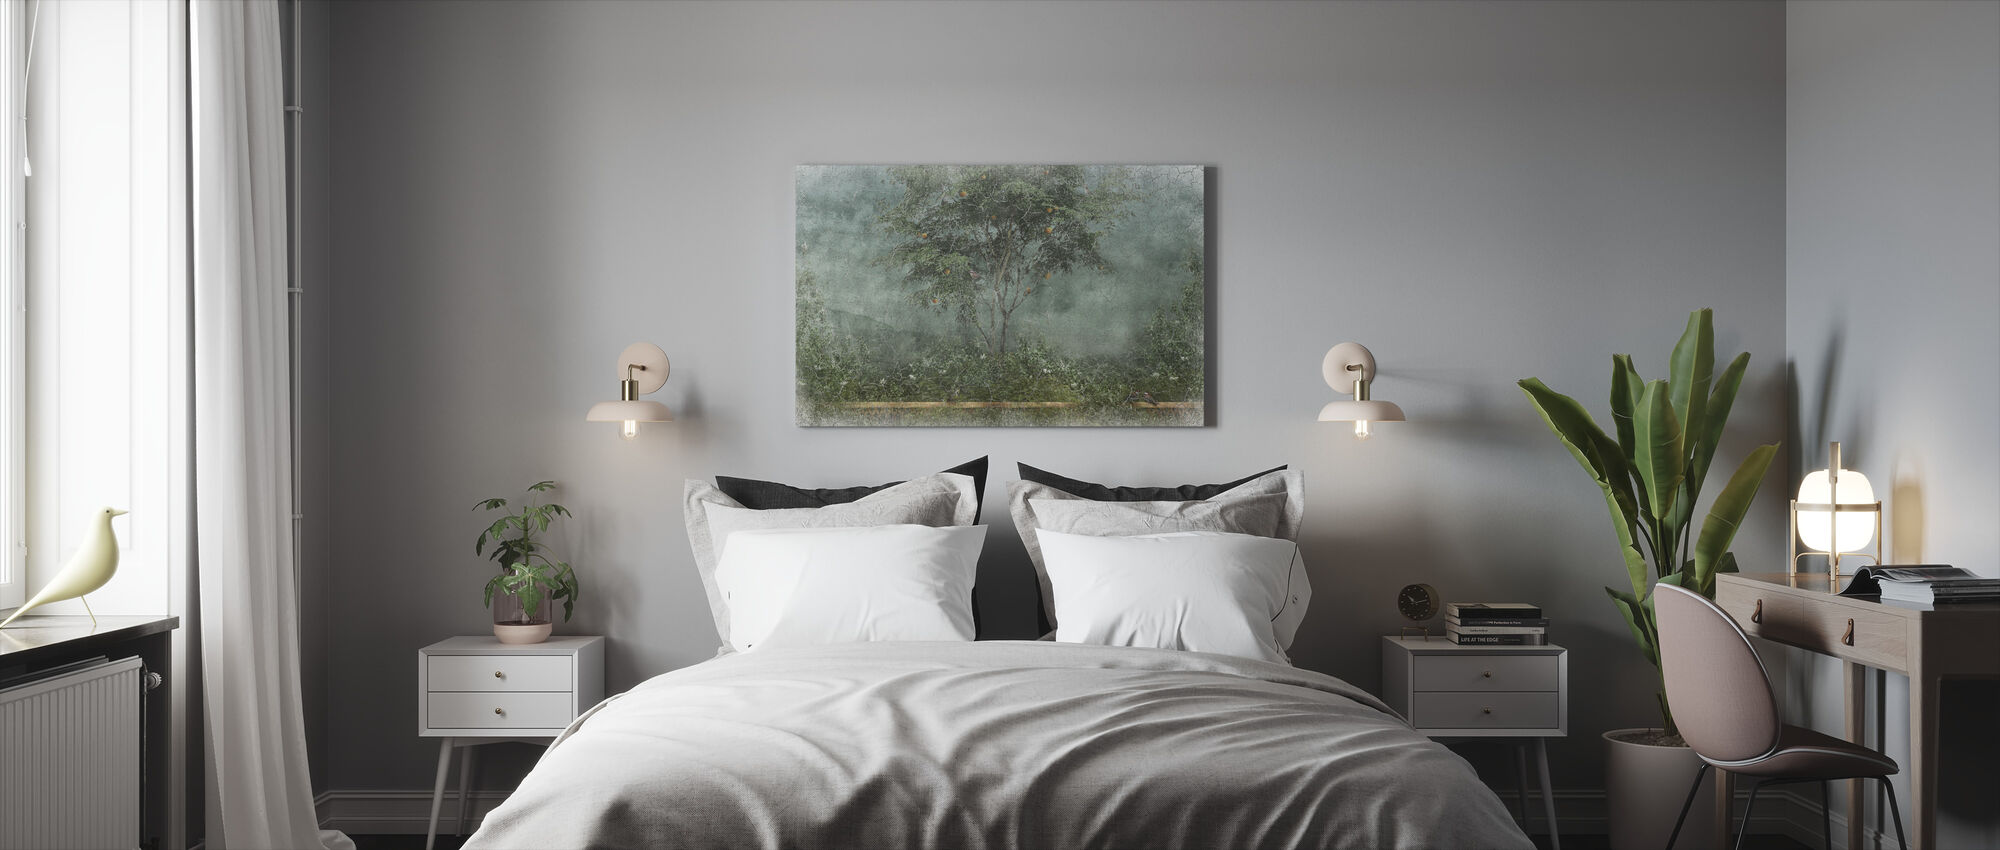 Old Frayed Painted Wall II - Canvas print - Bedroom